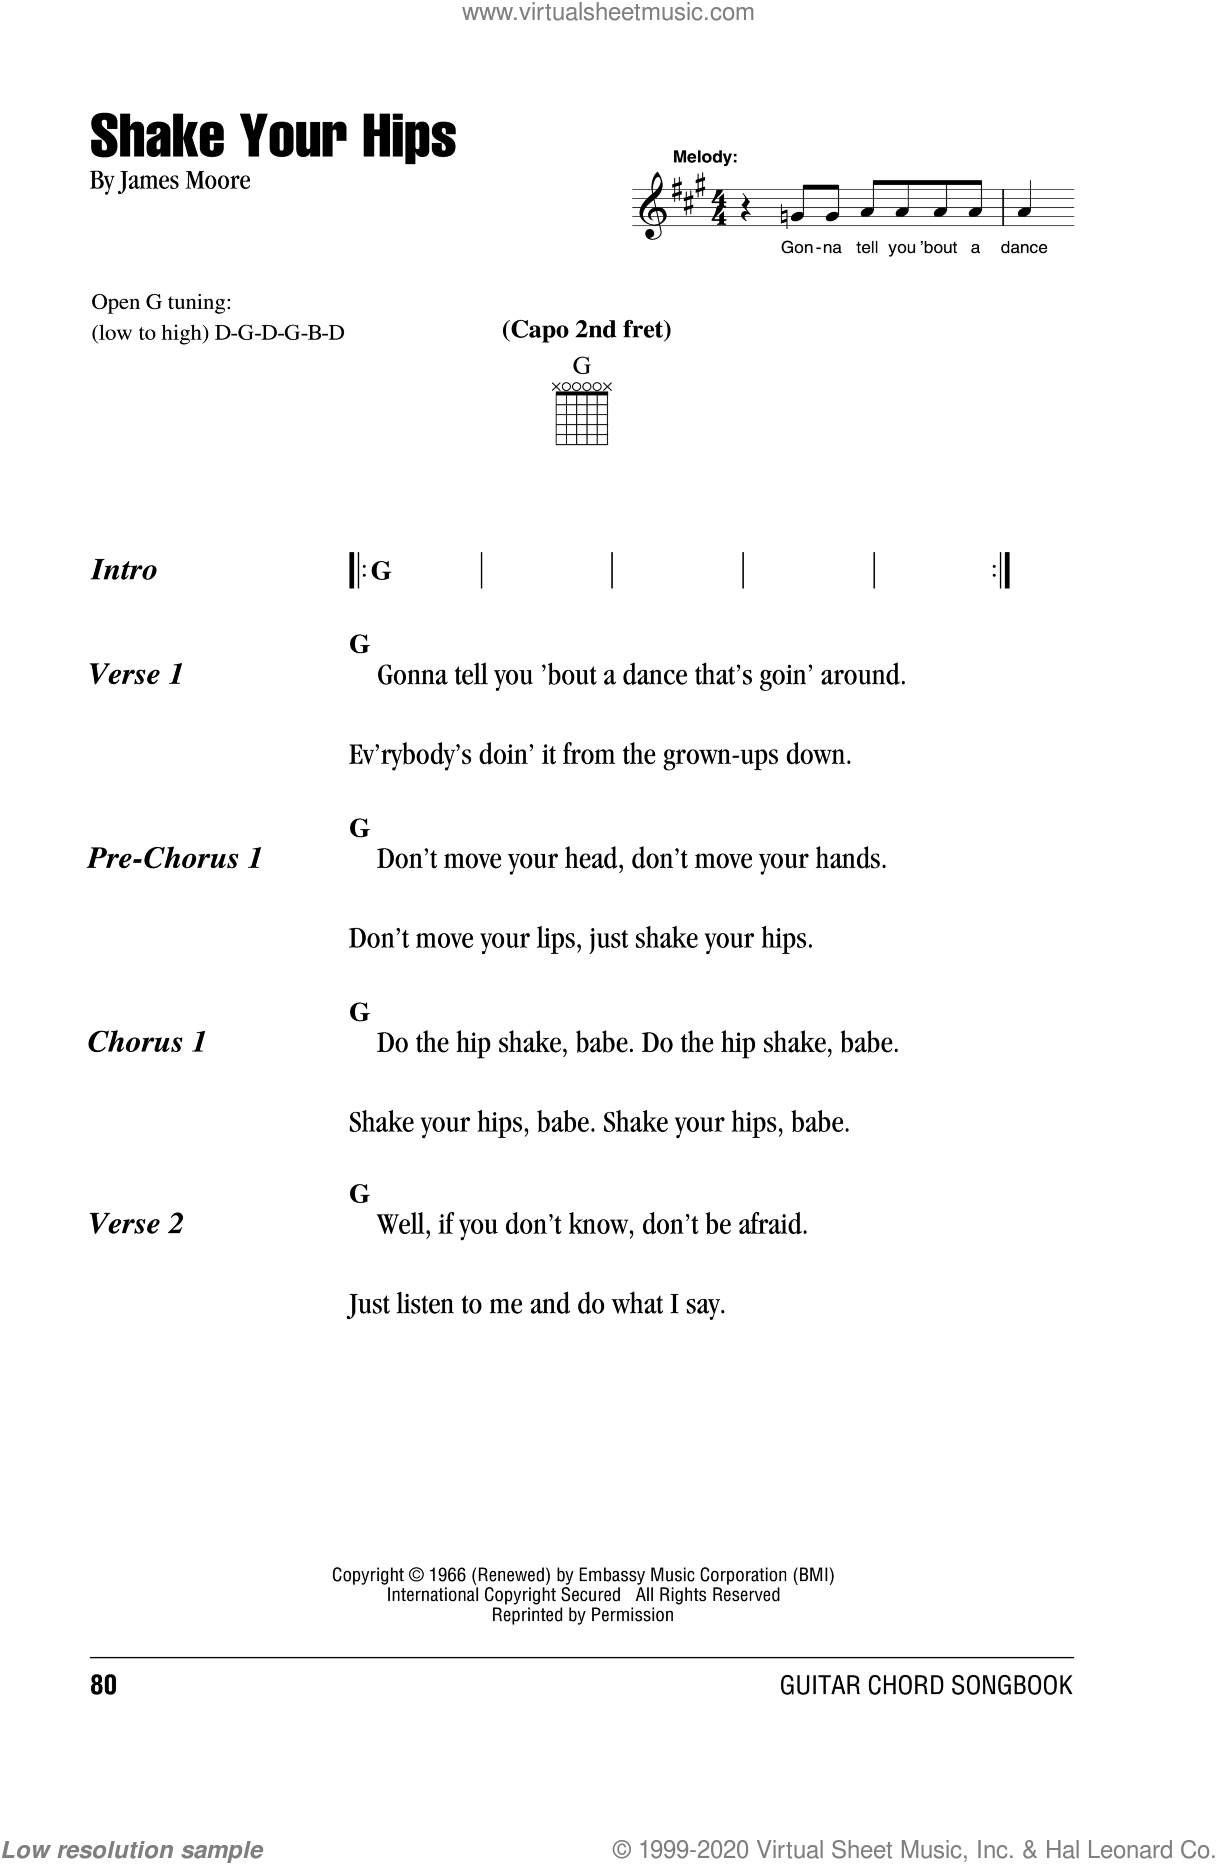 Shake Your Hips sheet music for guitar (chords) by The Rolling Stones and James Moore, intermediate skill level